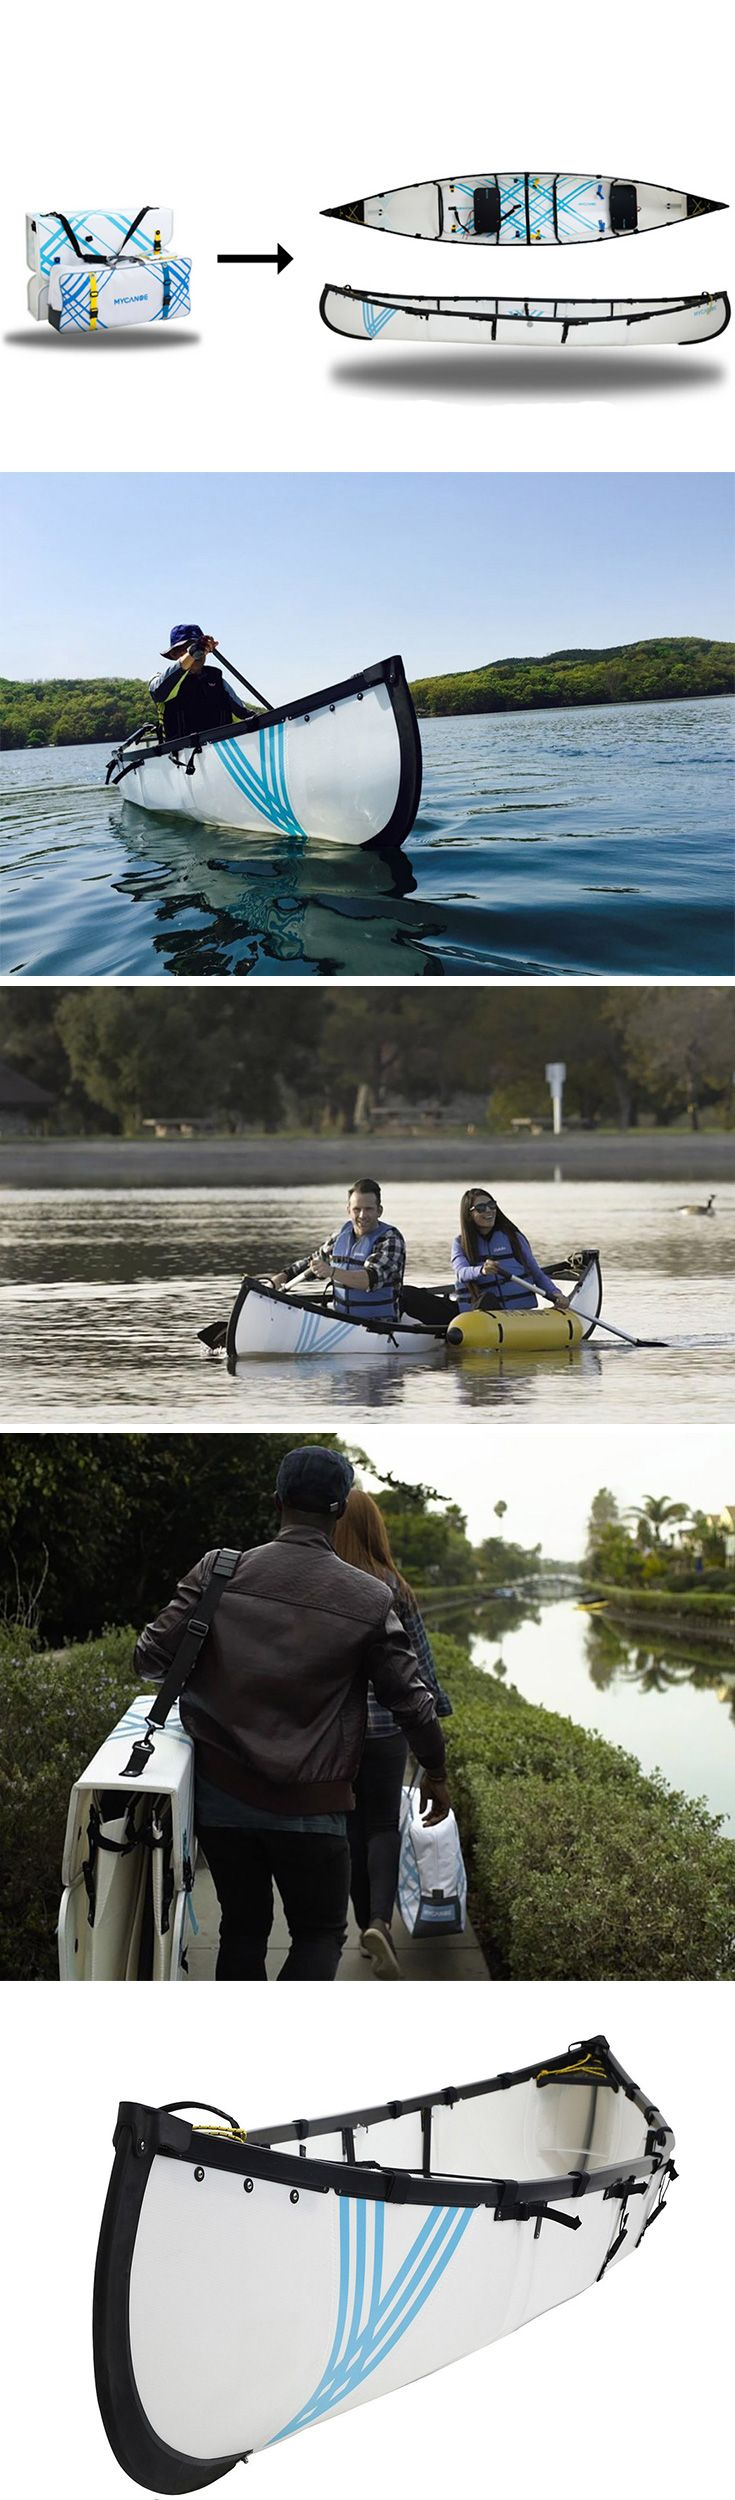 10 minutes is all you need transform this origami-inspired design from its folded form to a seaworthy vessel! It's called MyCanoe and it's compact enough to fit one or even two in your trunk, making it possible for anyone to enjoy canoeing without the need for car roof racks or a bulky, rigid boat. BUY NOW!